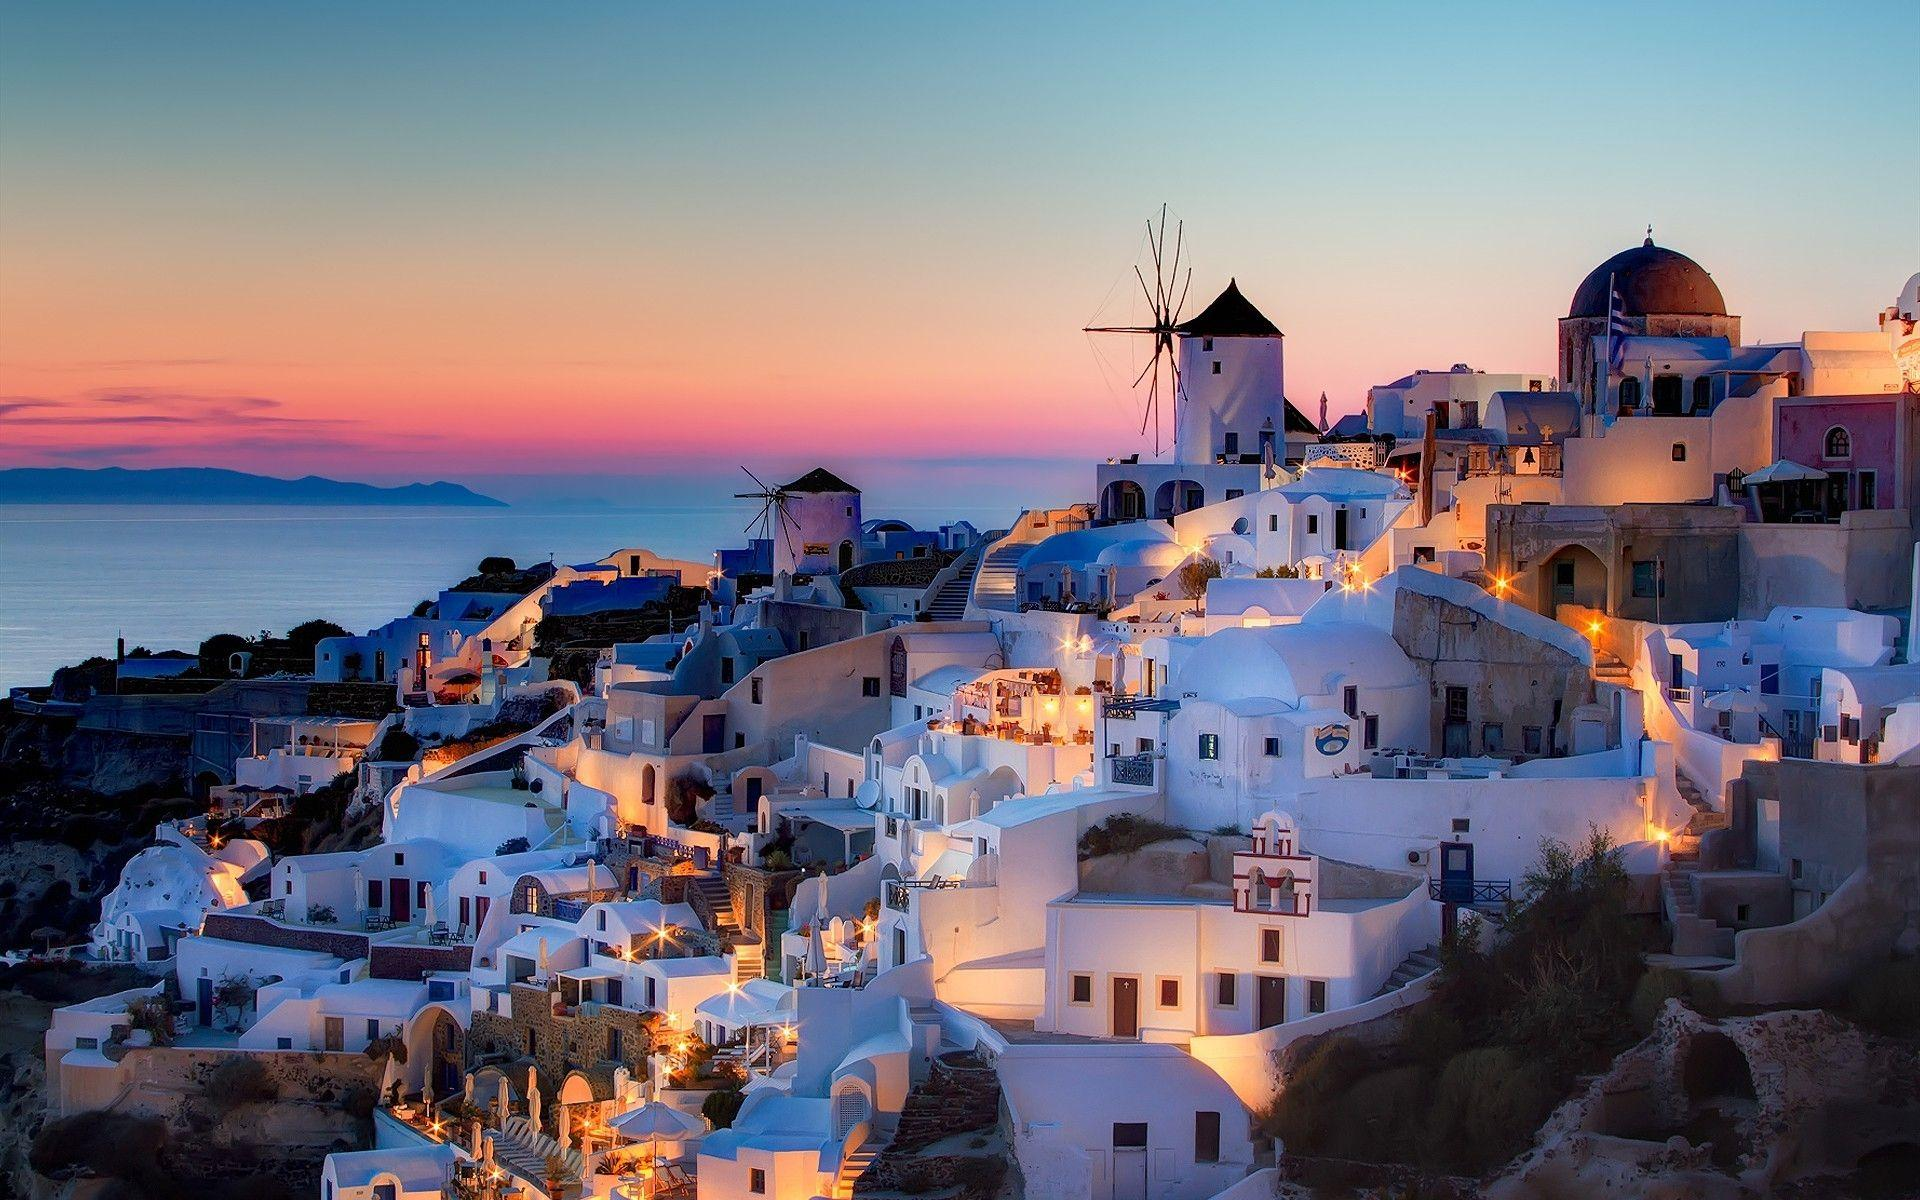 Greece Wallpapers Night HD Wallpaper, Backgrounds Image